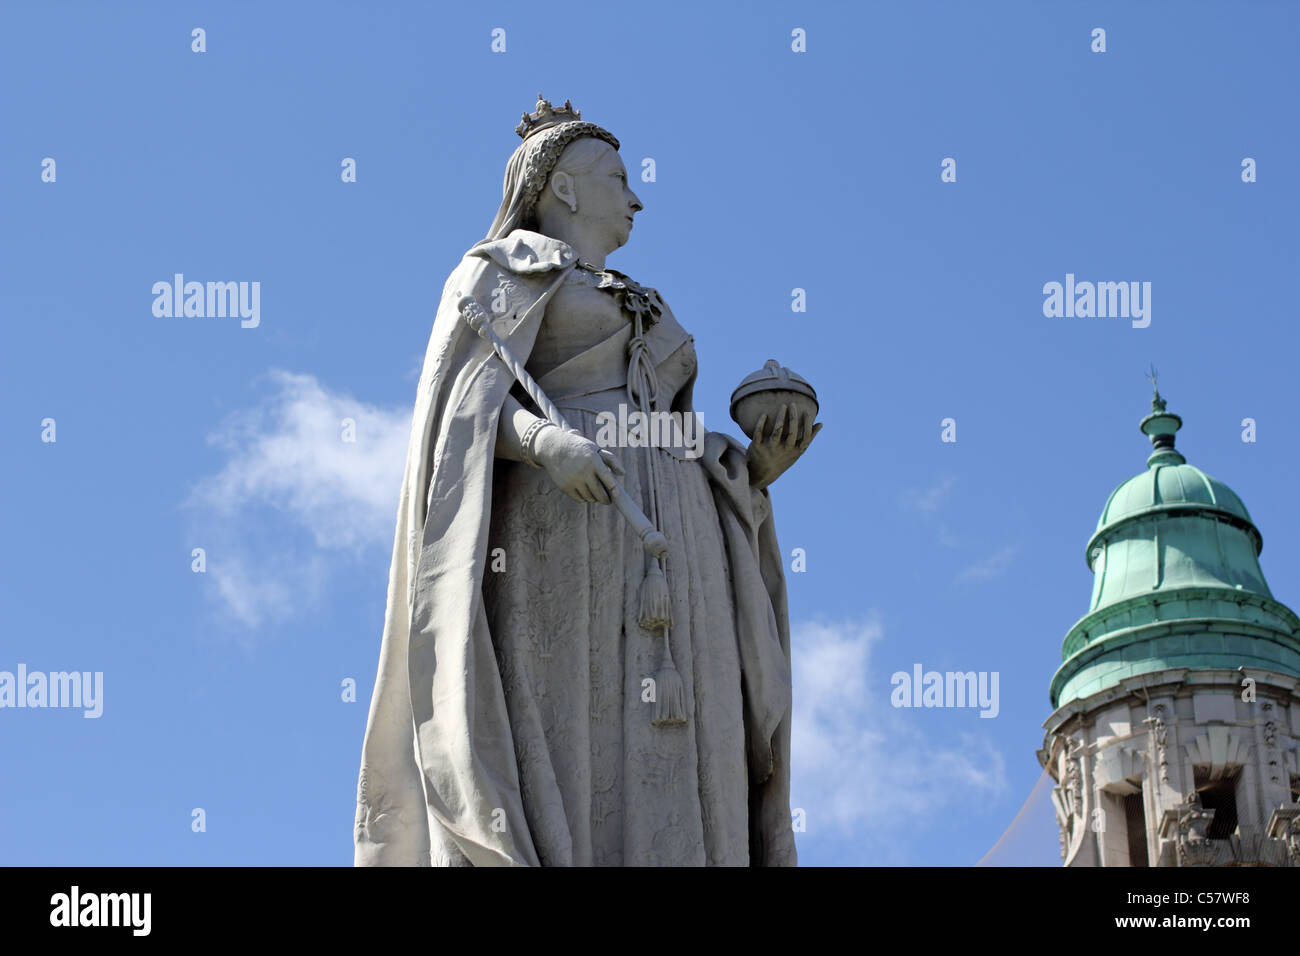 Statue of Queen Victoria outside Belfast City Hall, Belfast, Northern Ireland - Stock Image